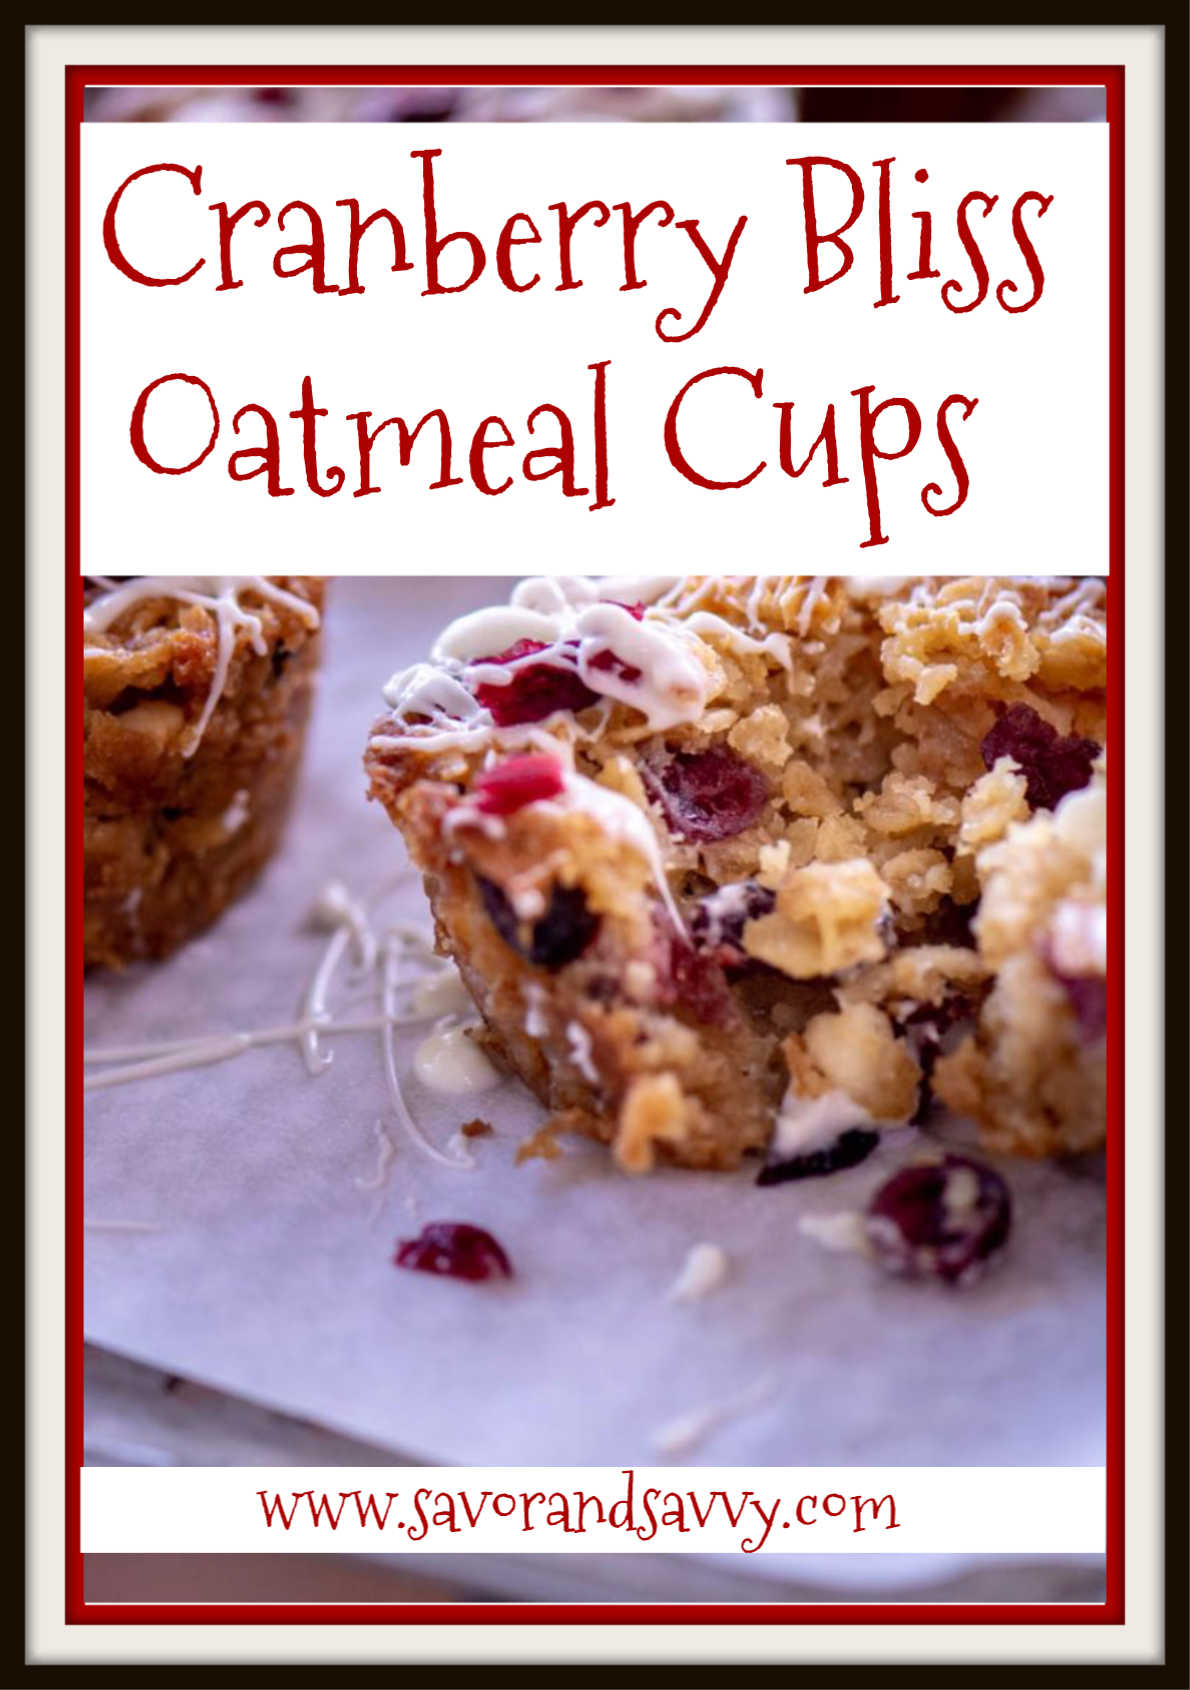 Baked Cranberry Bliss Oatmeal Cups